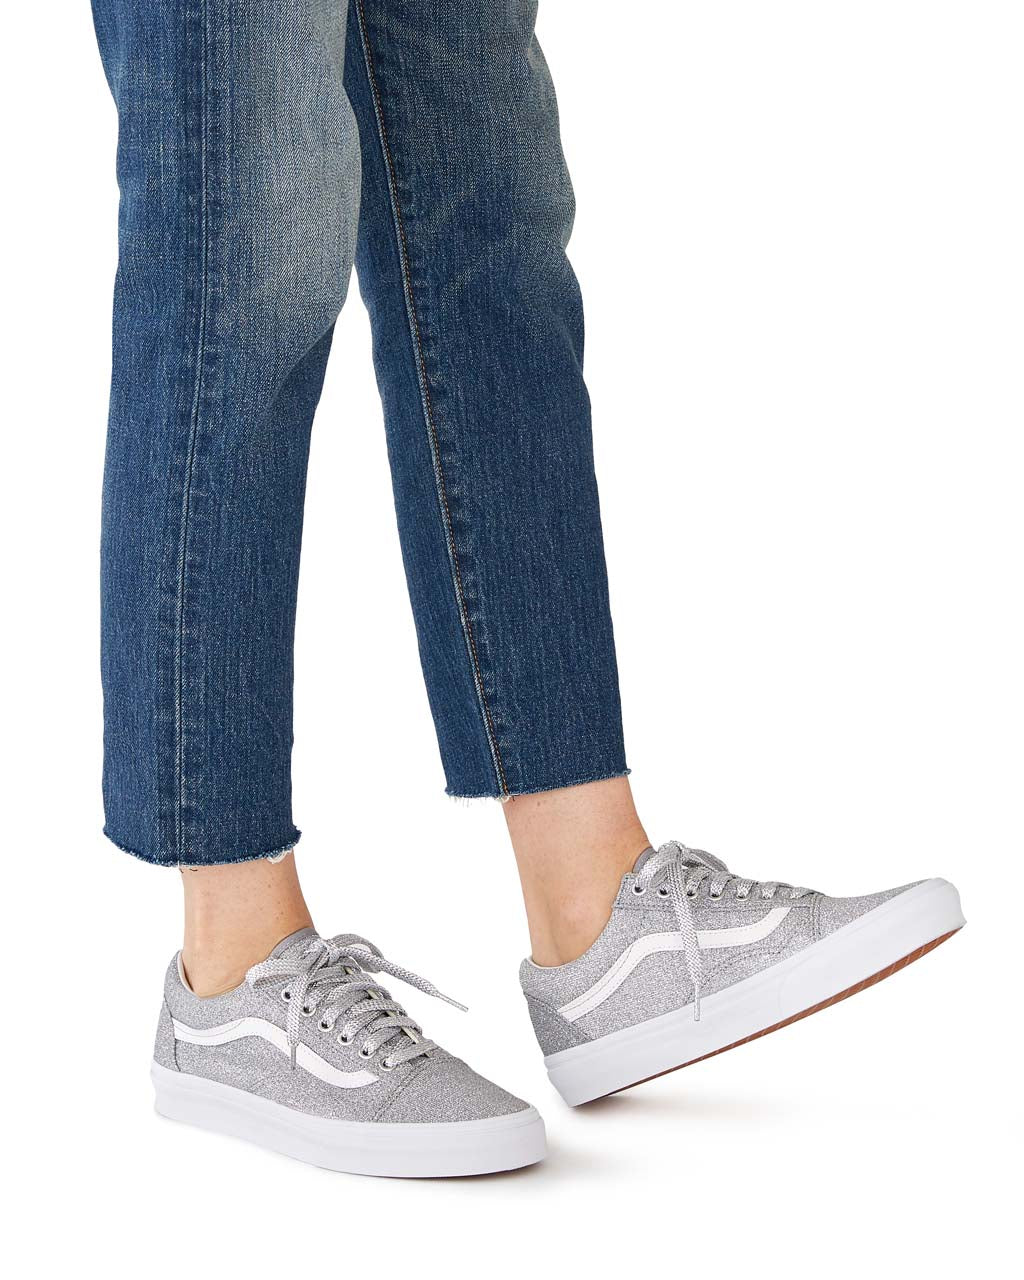 close up of woman wearing silver glitter Vans sneakers with jeans